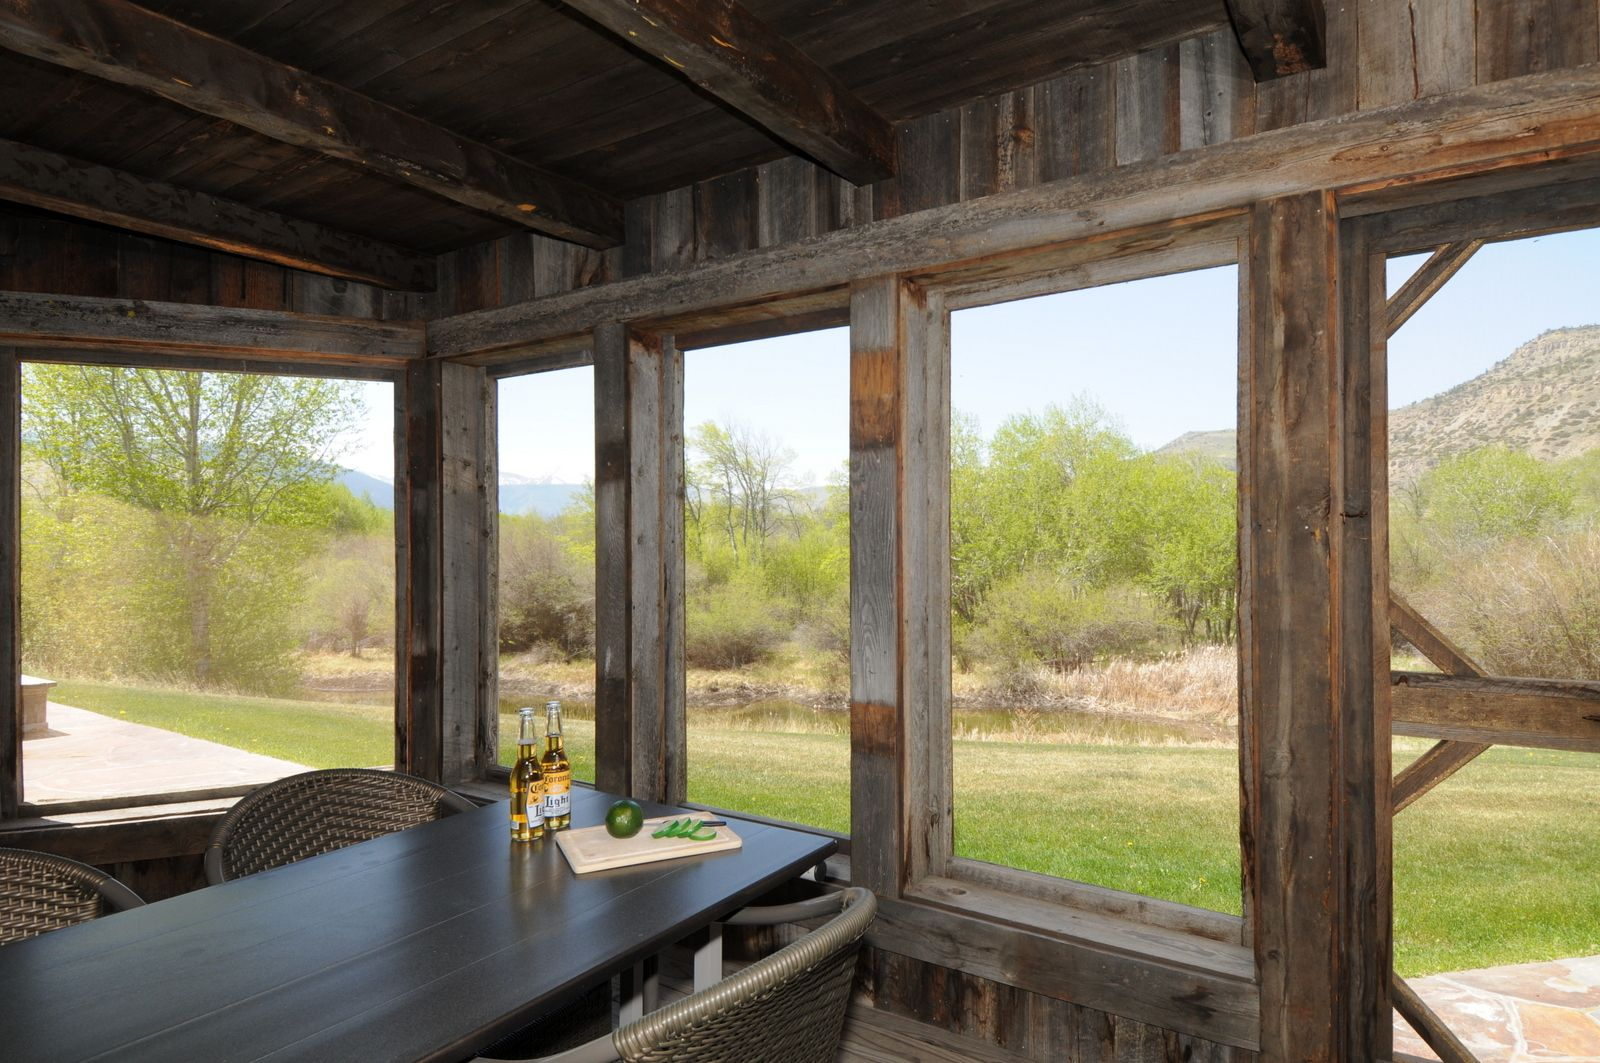 an enclosed deck allows you to eat outside without getting too